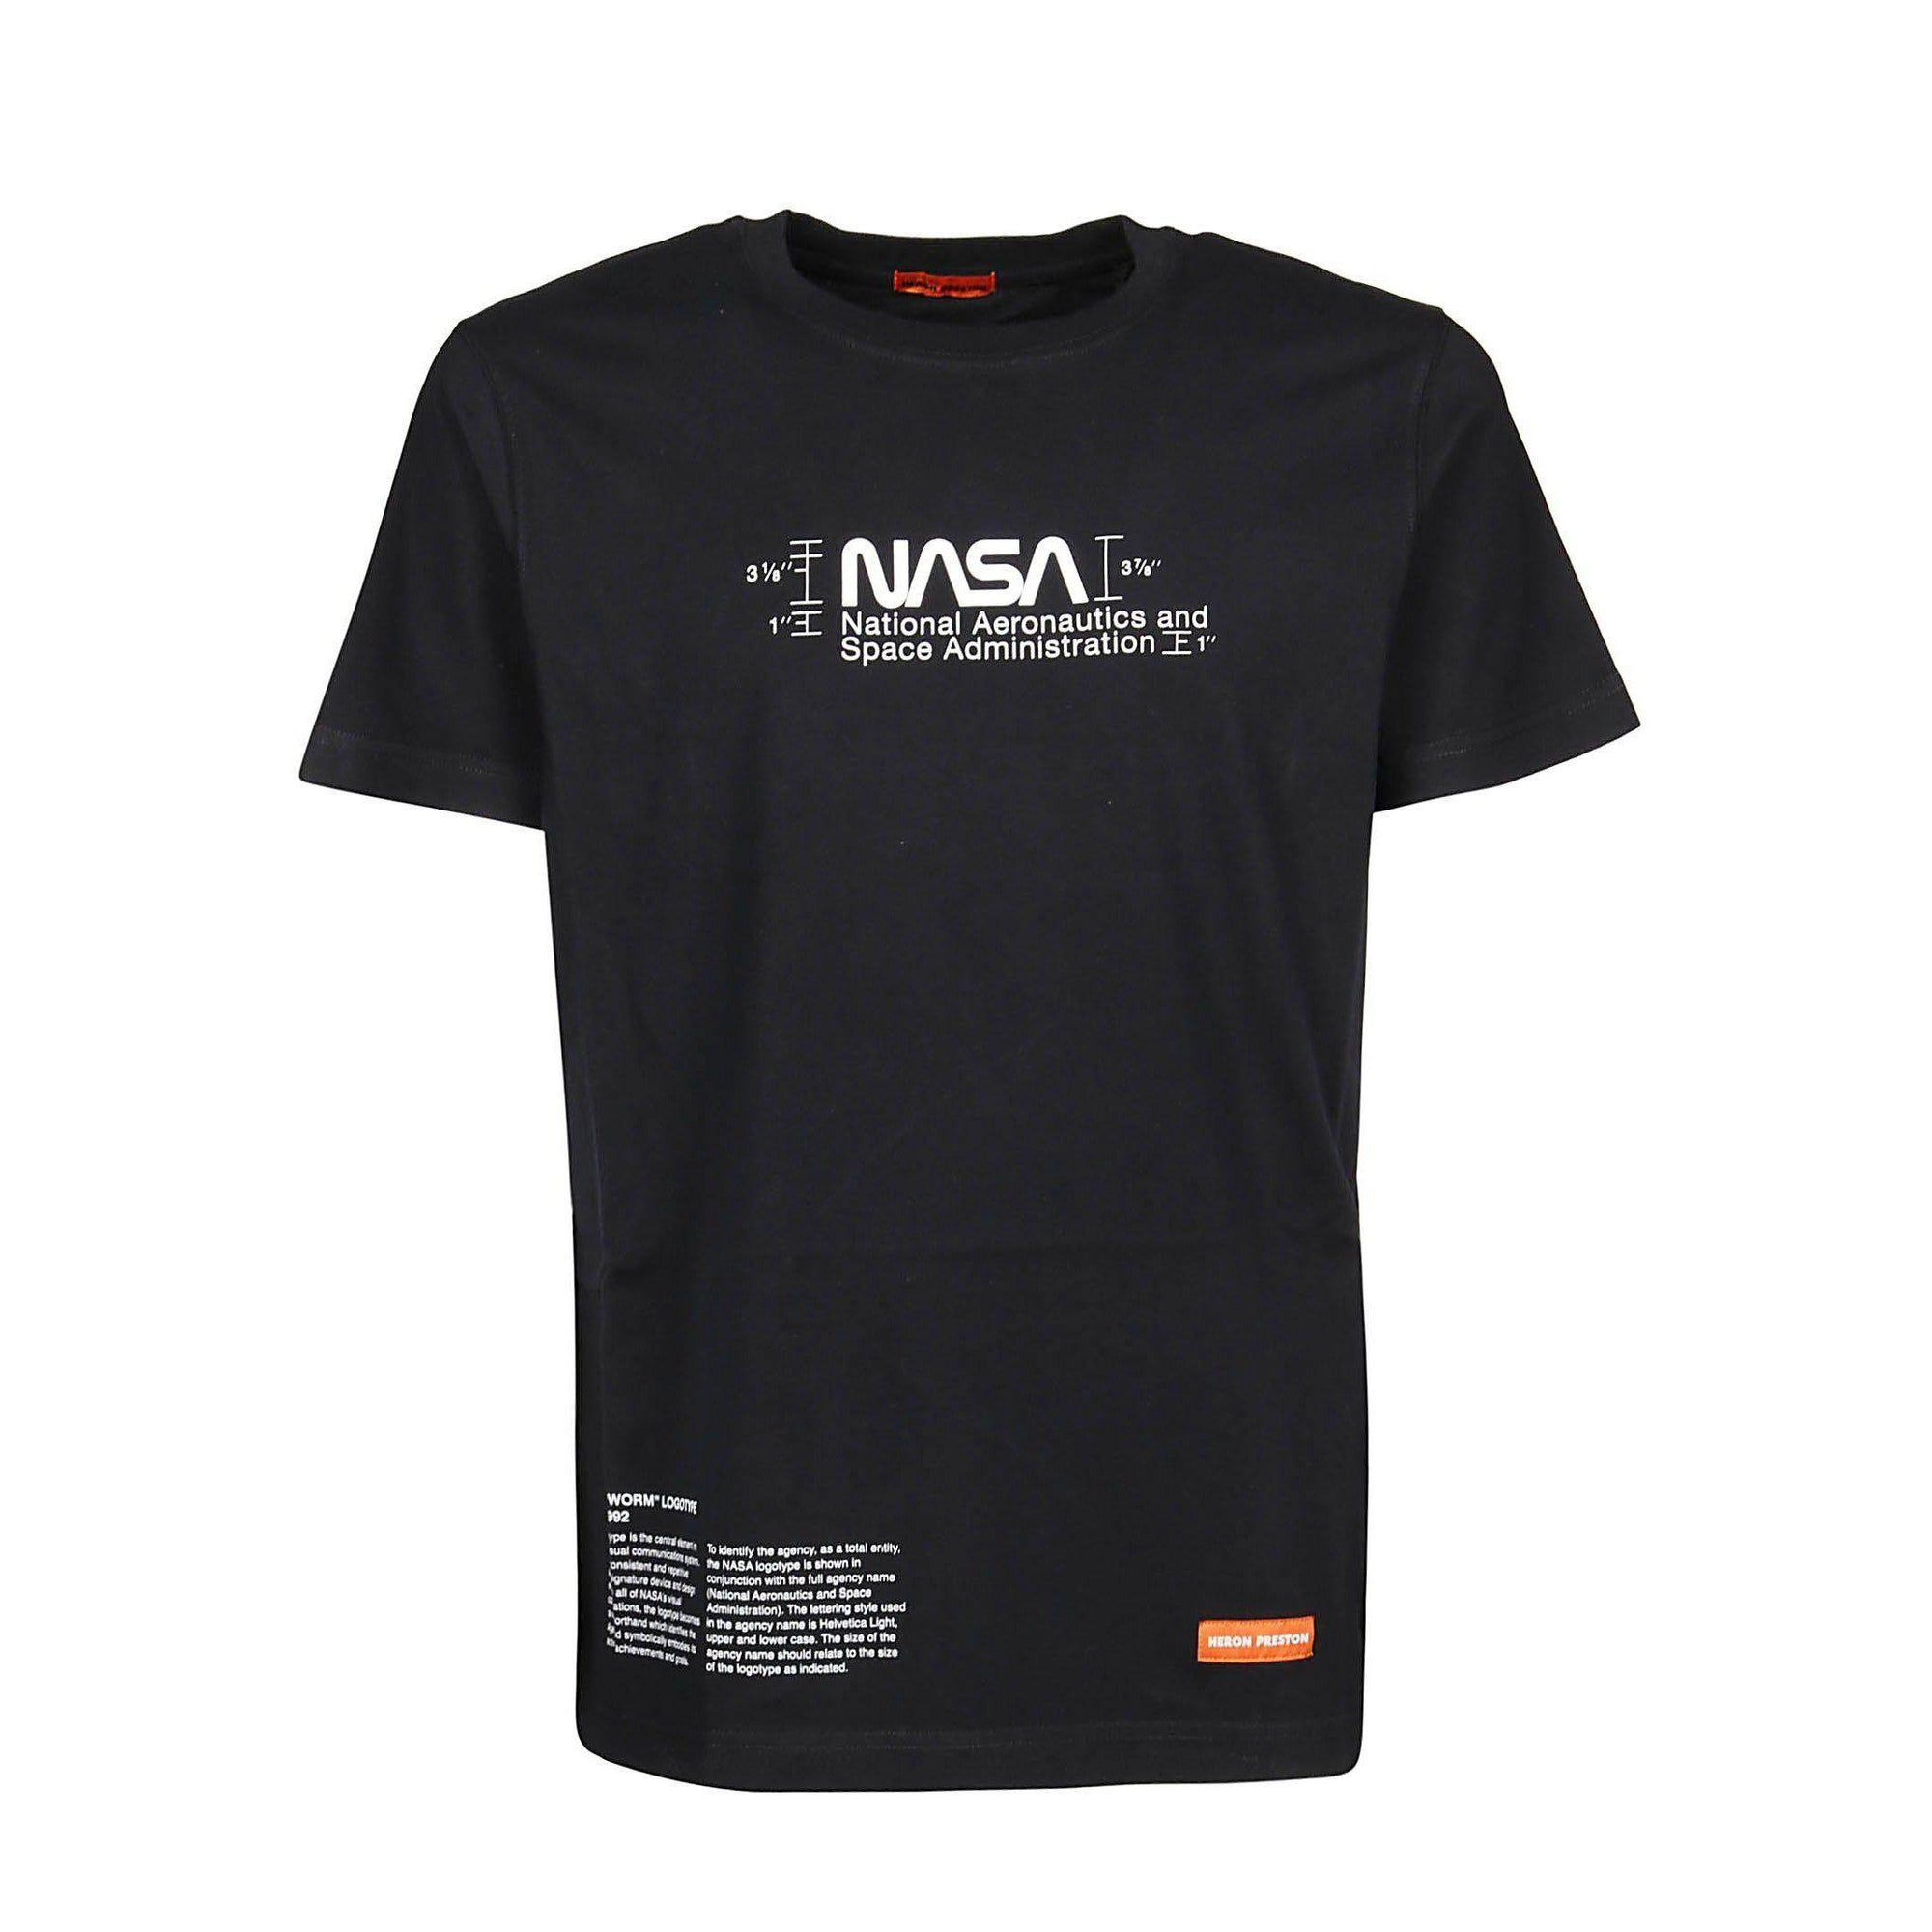 Heron Preston Black Regular Manual T-Shirt - Waves Never Die